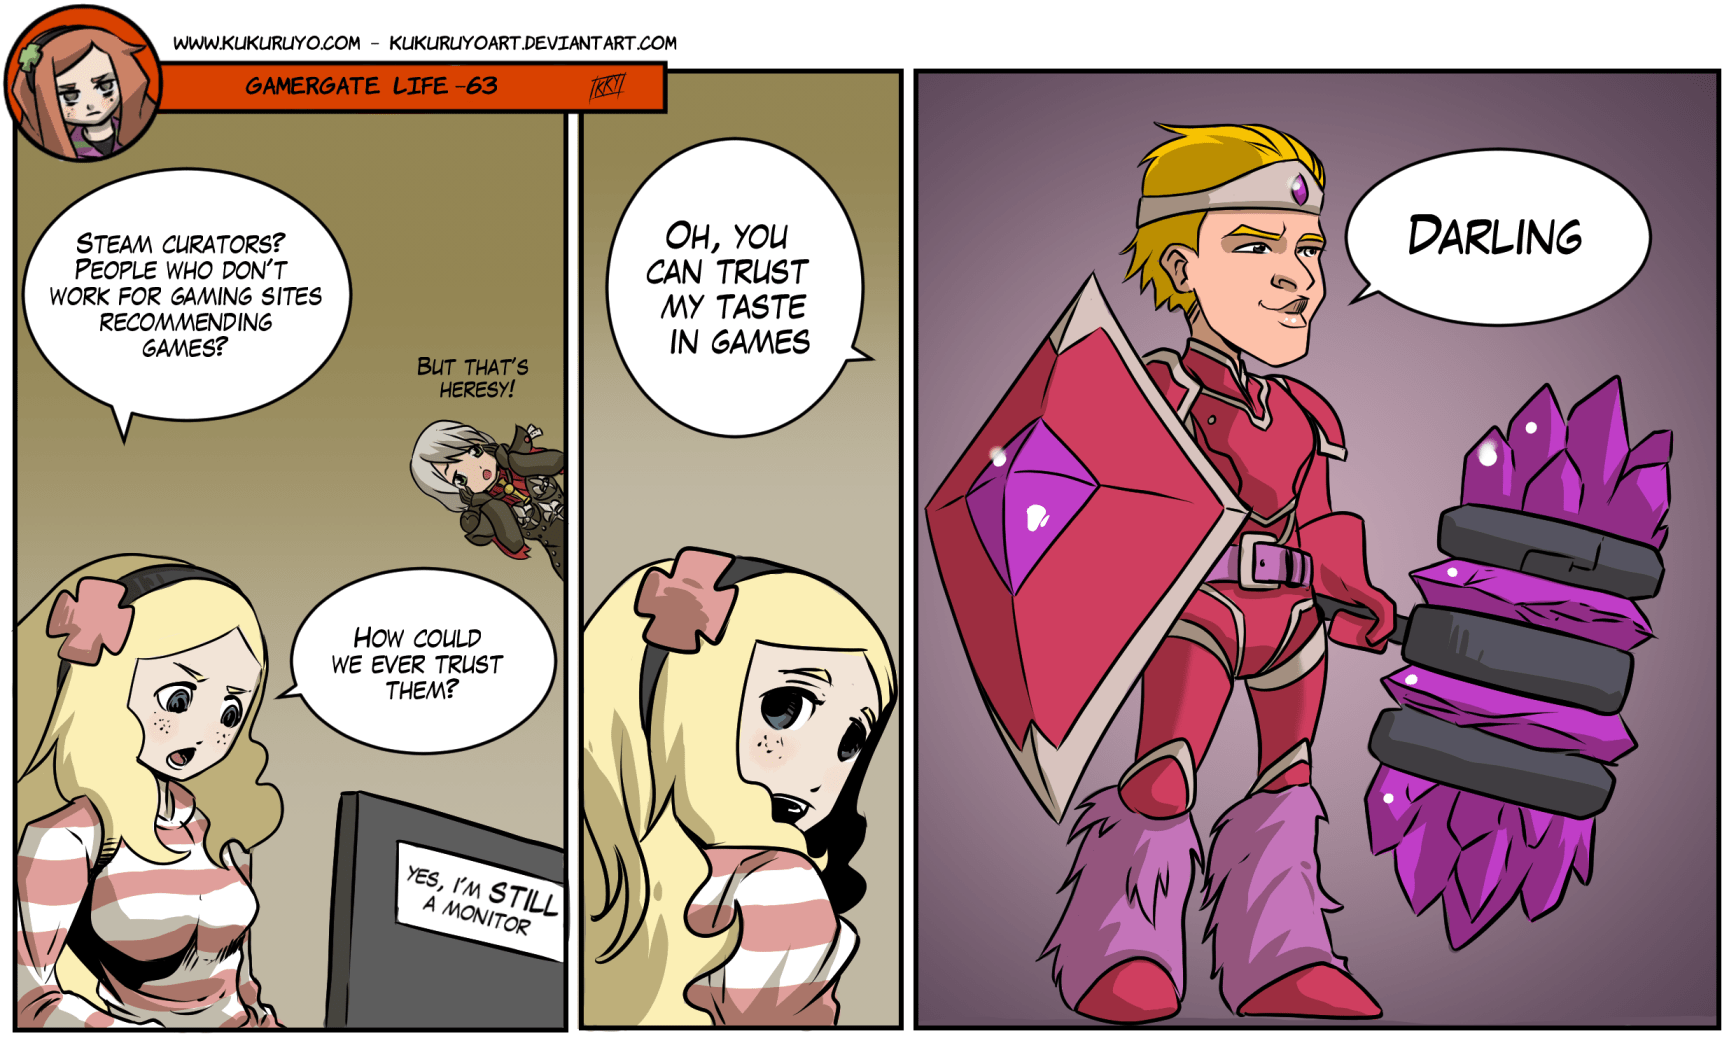 Gamergate Life 63 (english)